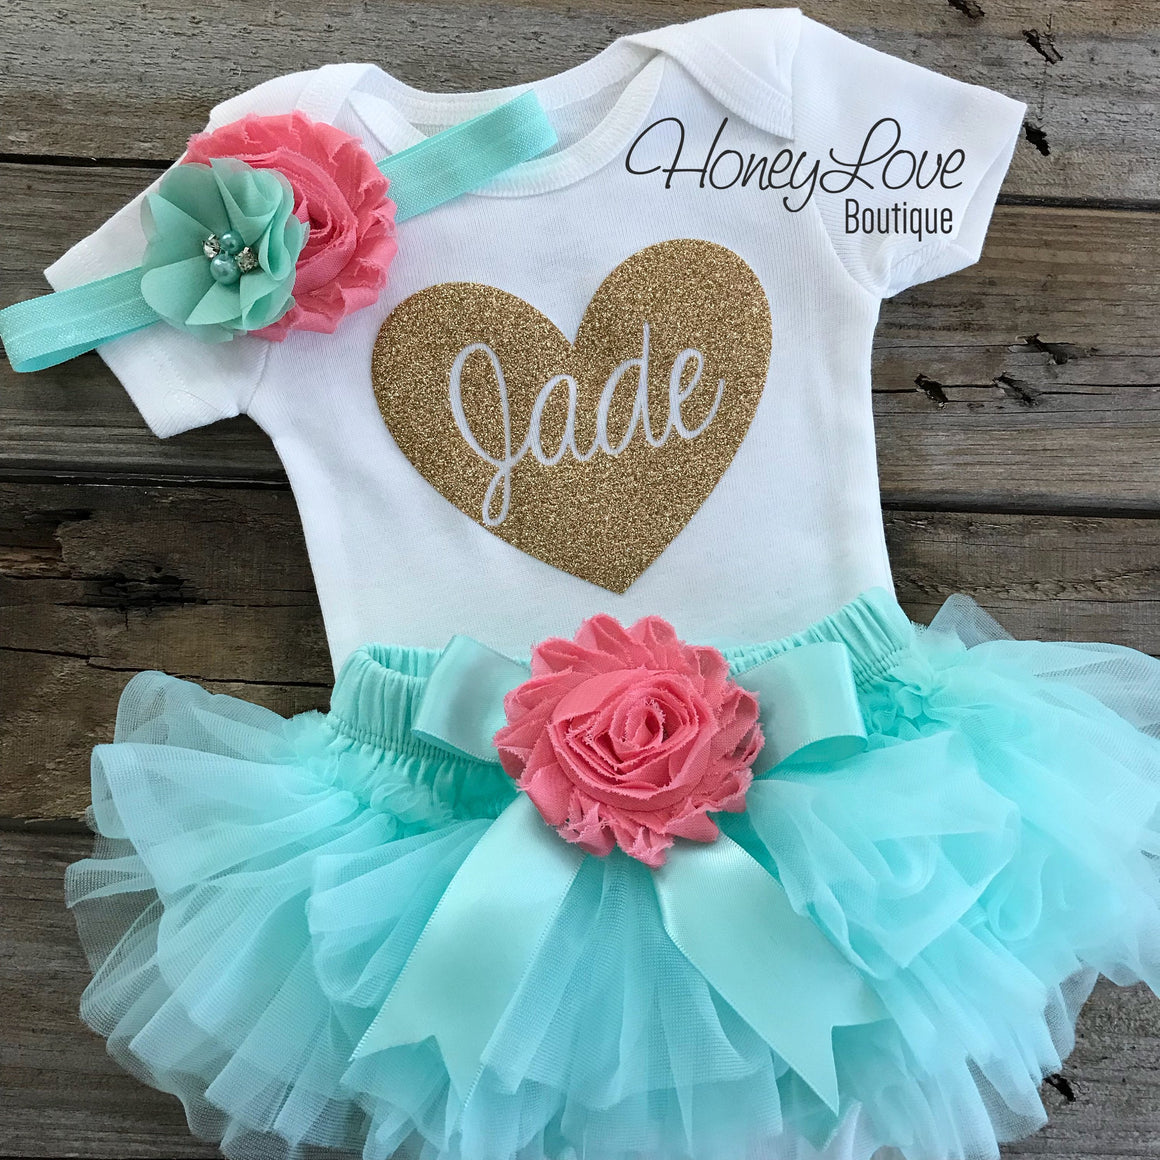 PERSONALIZED gold glitter name heart bodysuit, mint aqua coral flower tutu skirt bloomers newborn infant baby girl take home hospital outfit - HoneyLoveBoutique